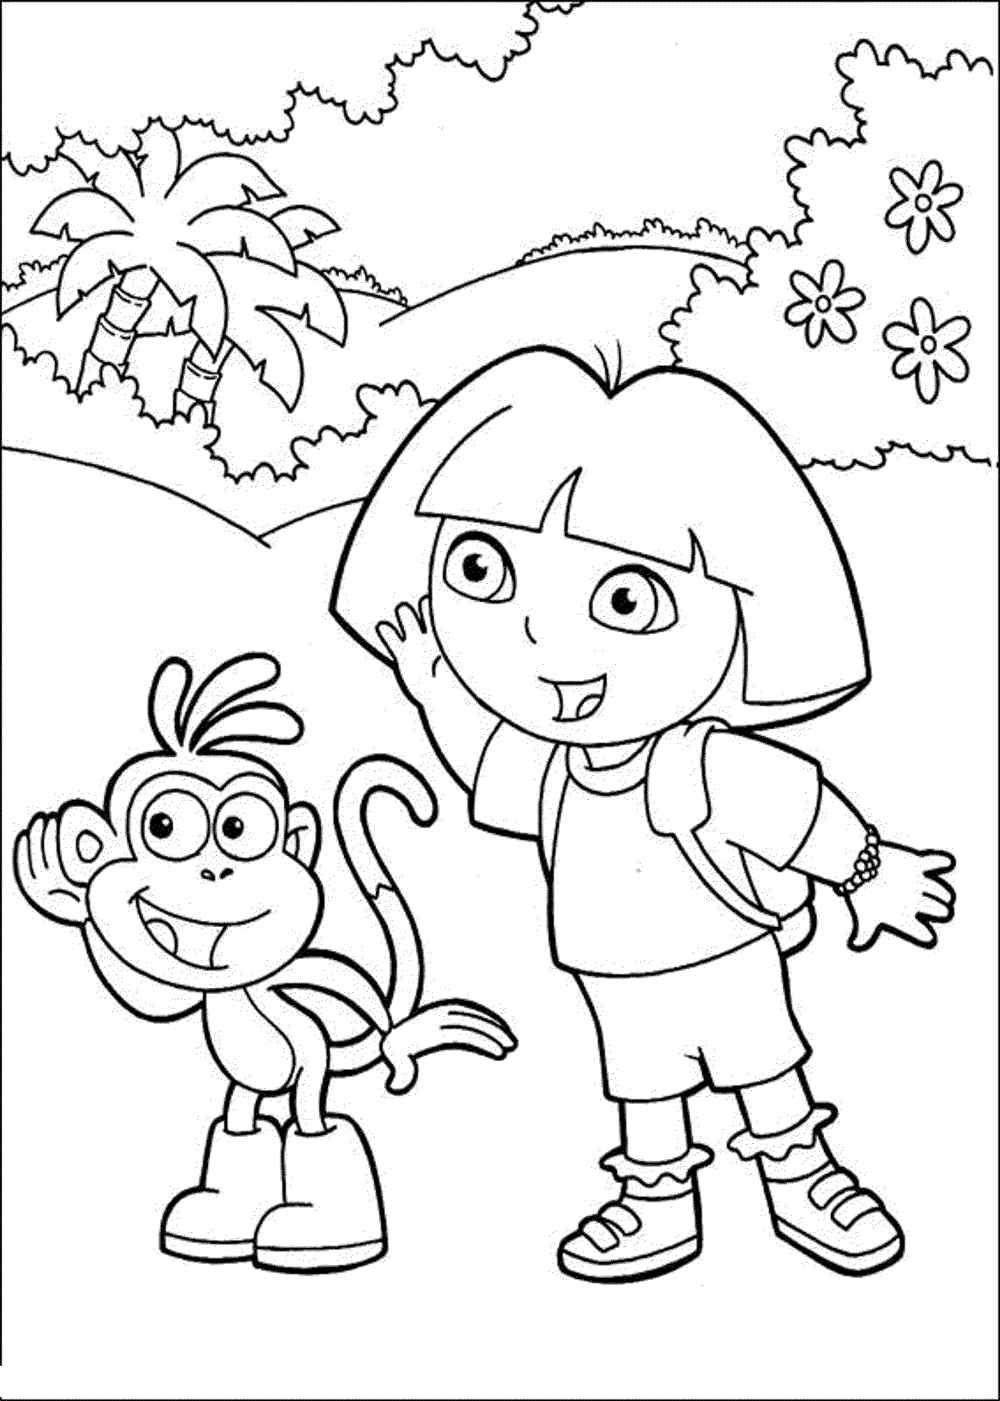 dora coloring print download dora coloring pages to learn new things coloring dora 1 2